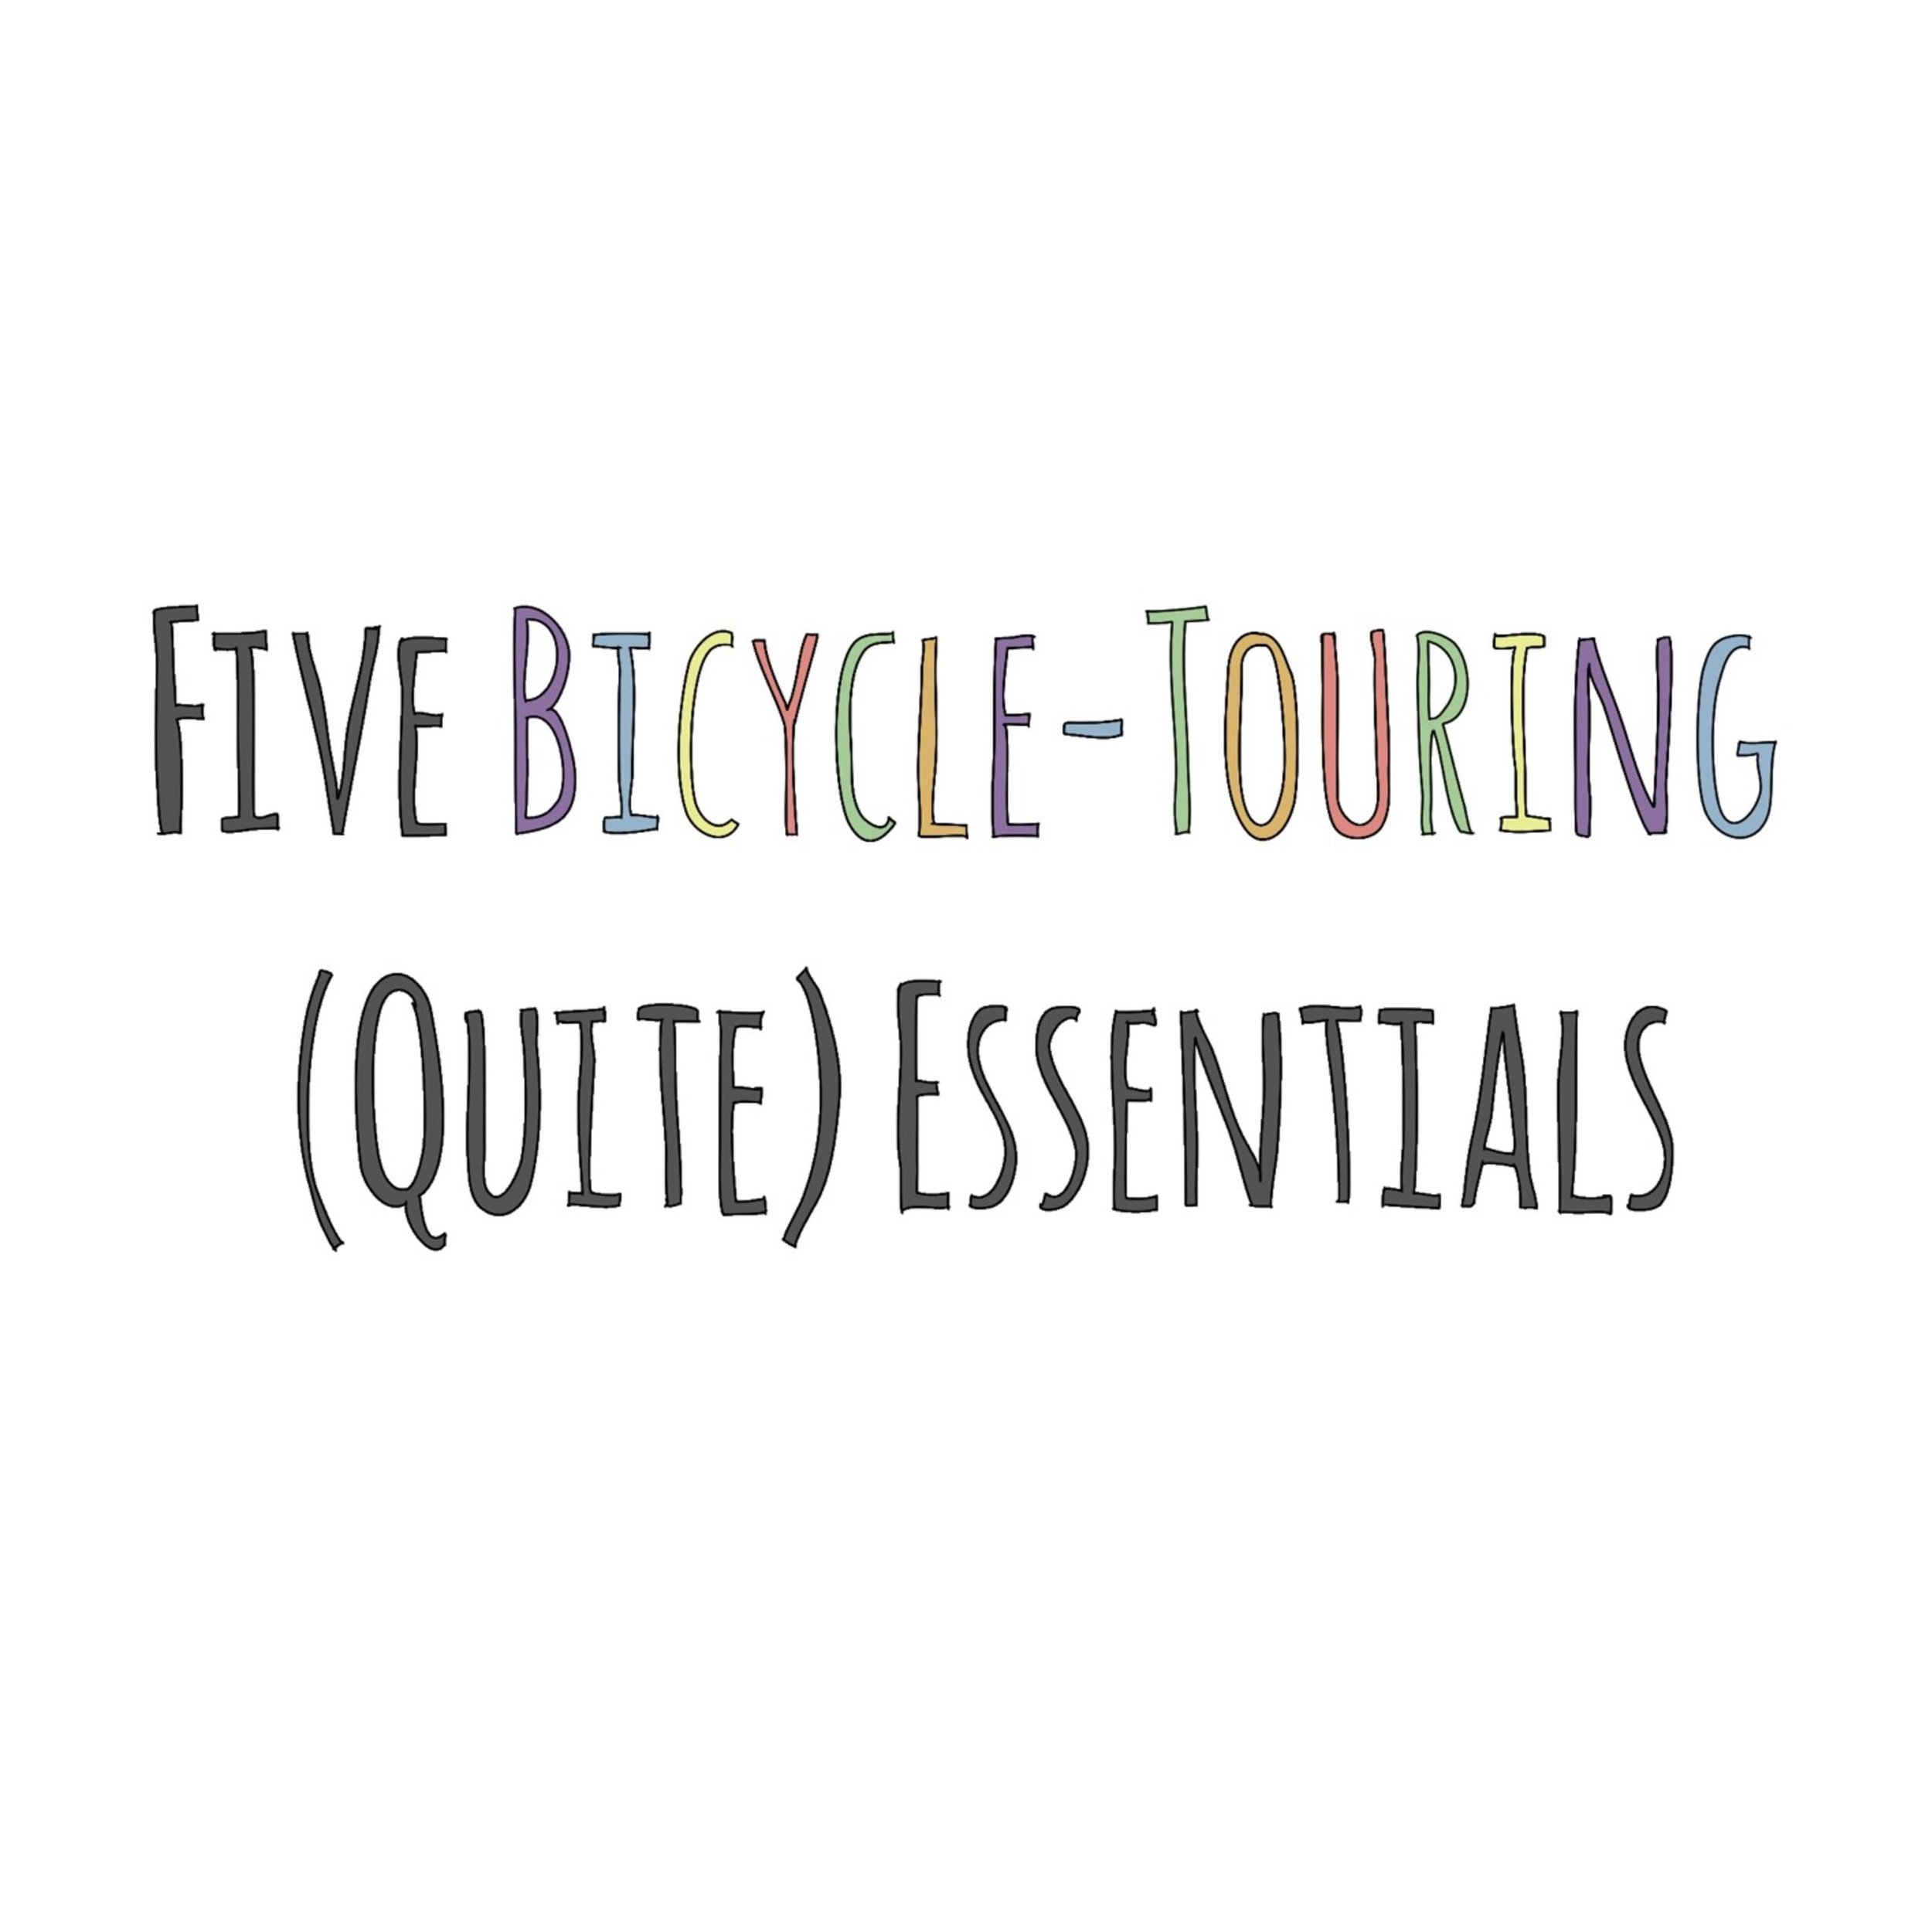 5 bicycle touring essentials-page-001